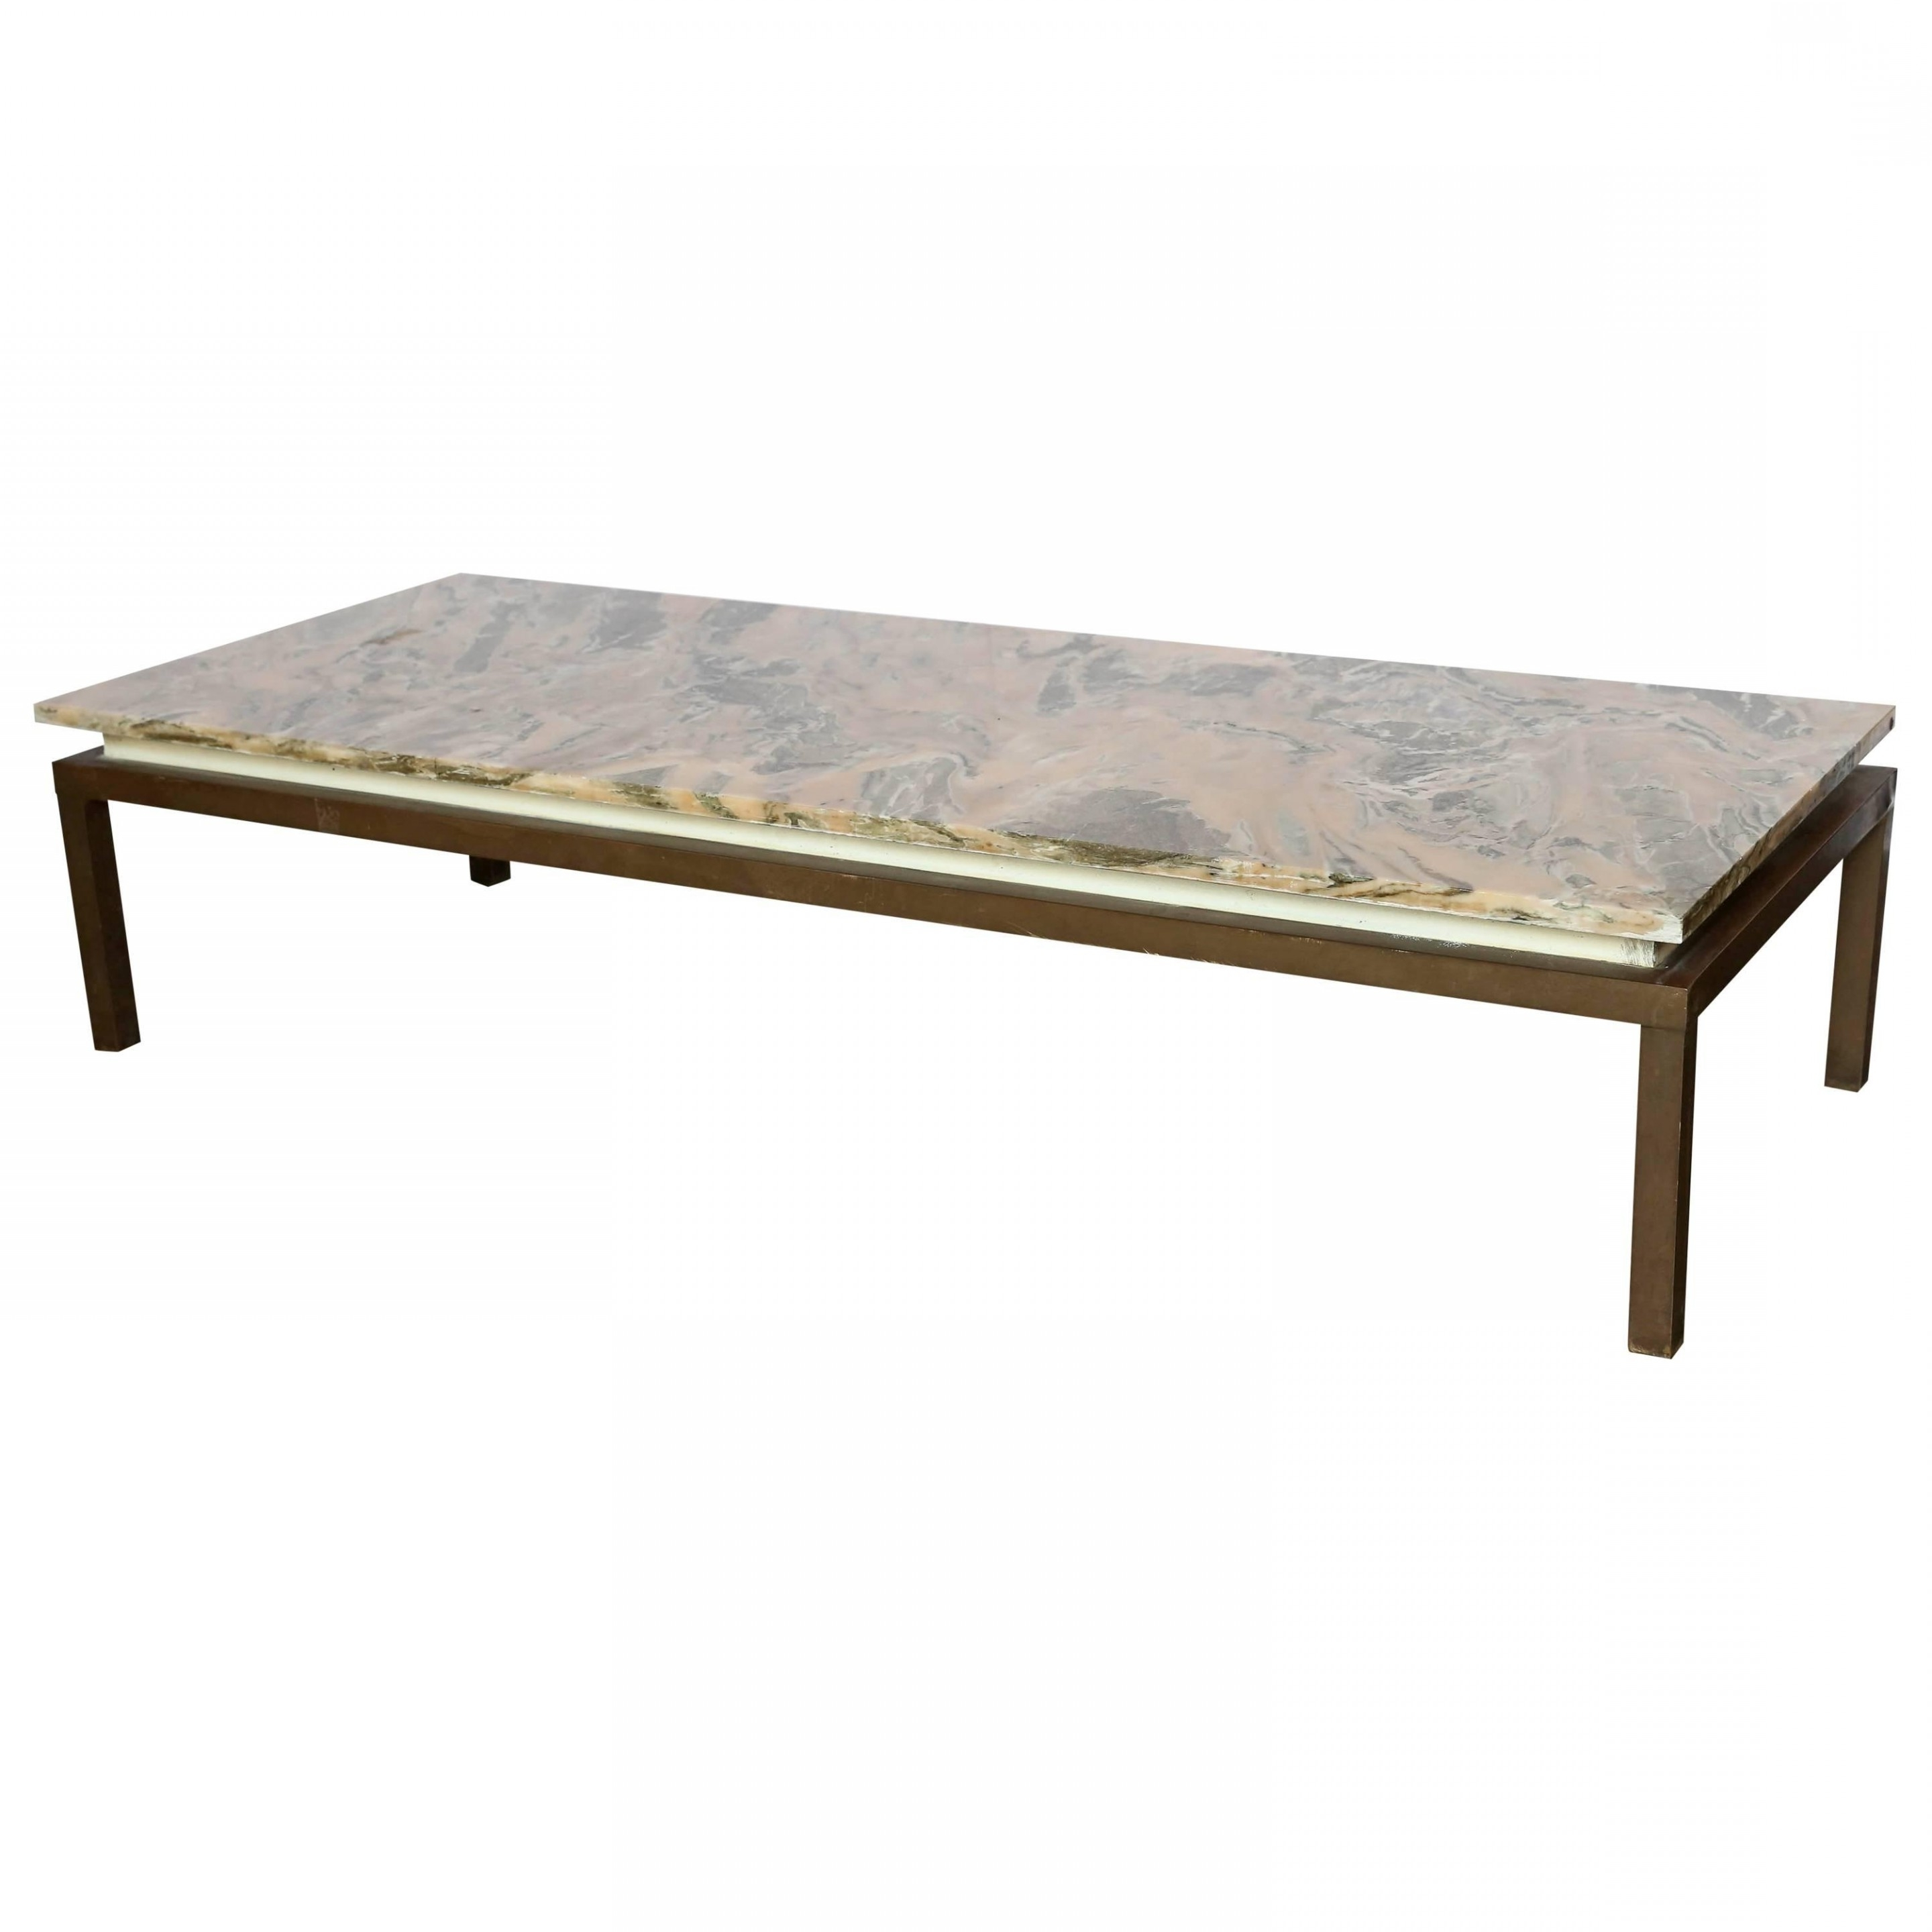 Vintage Industrial Coffee Table Lovely Mid Century Modern Marble Throughout Best And Newest Mid Century Modern Marble Coffee Tables (View 19 of 20)